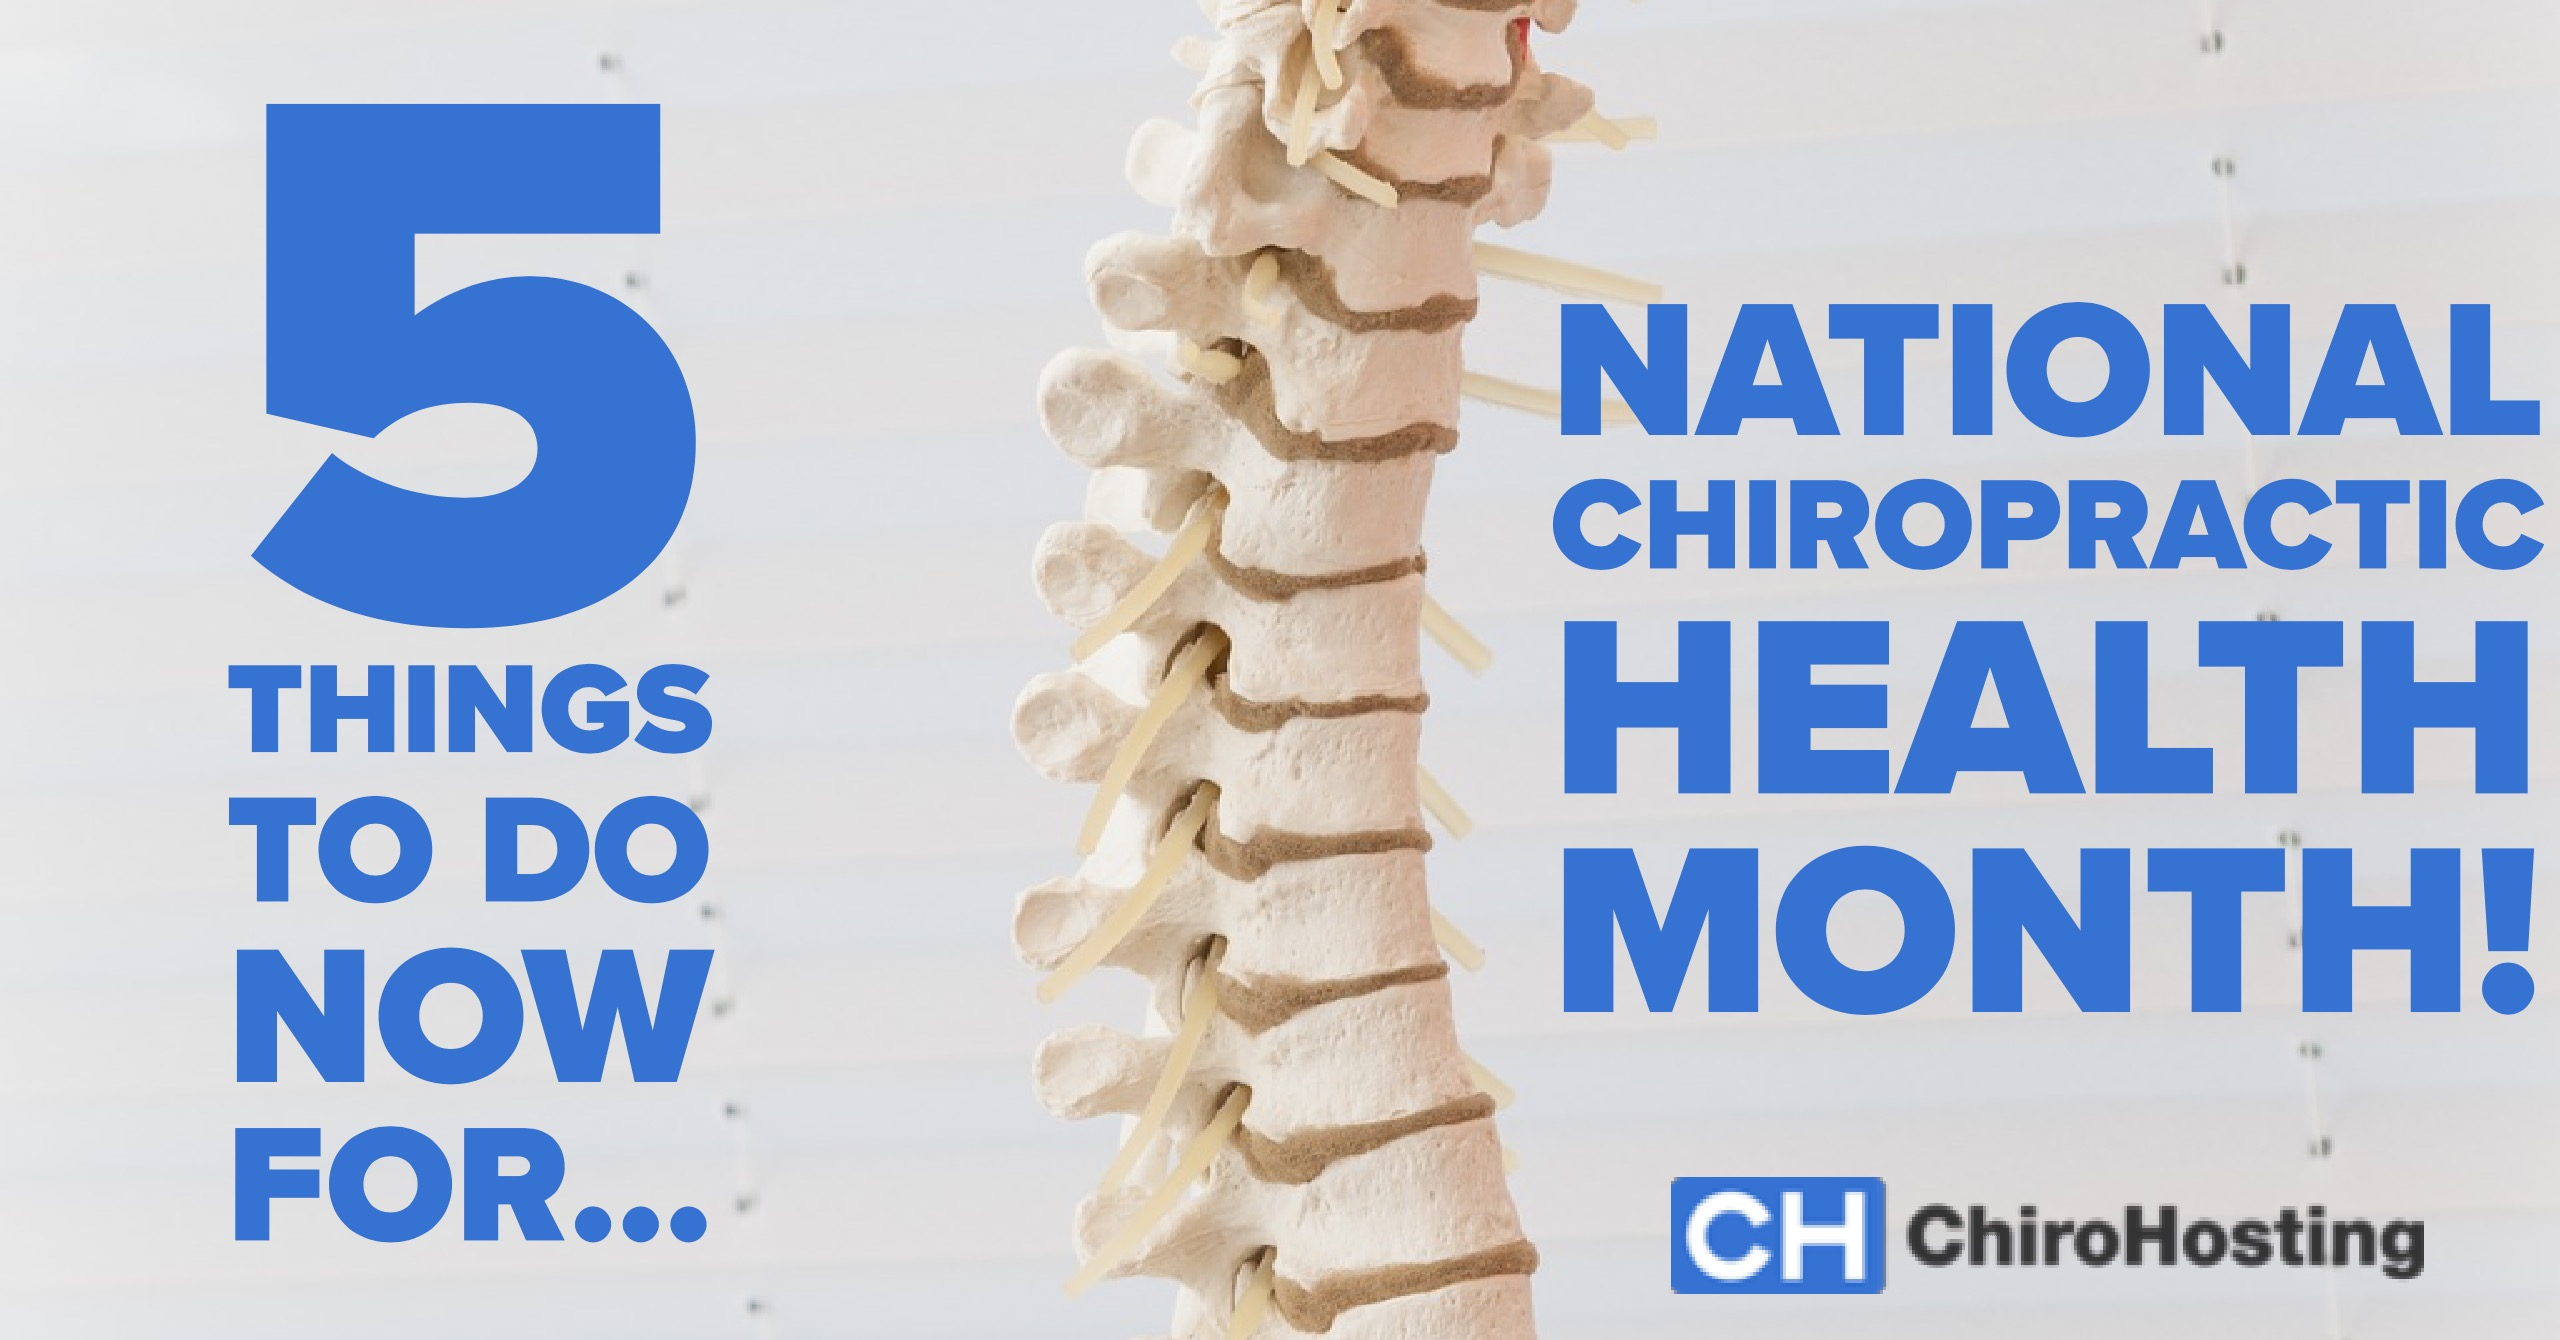 4 key chiropractic marketing terms you need to know now to bump your